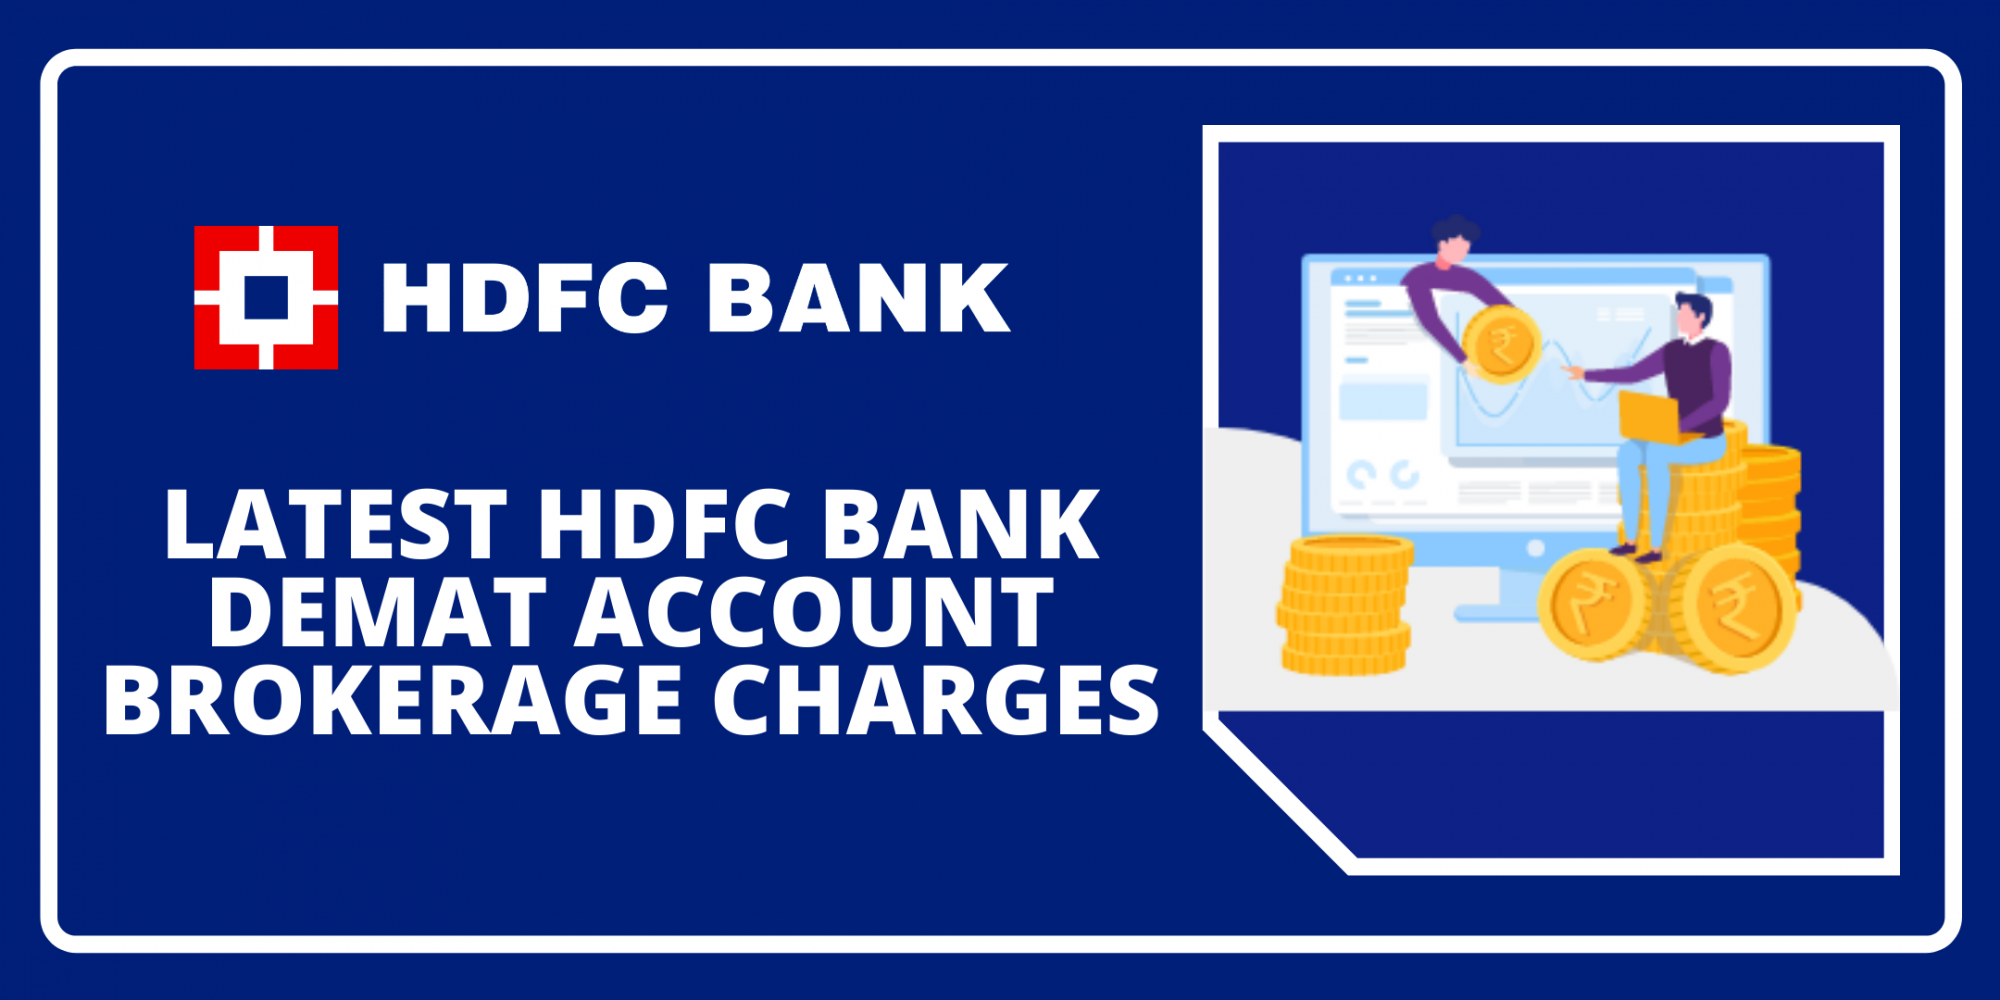 Latest HDFC Demat Account Brokerage Charges